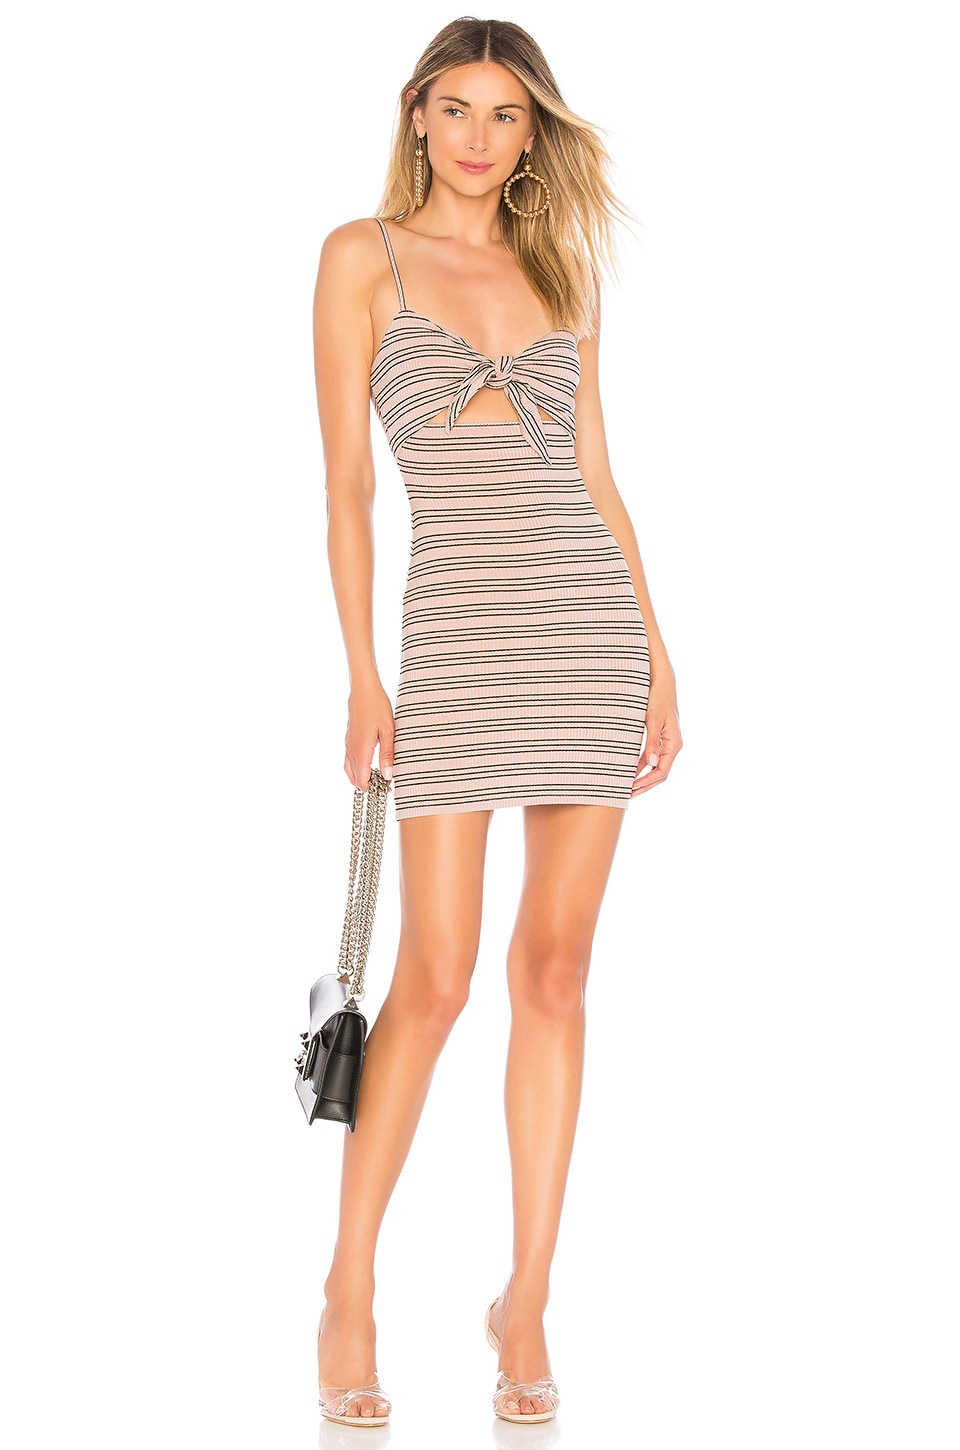 Privacy Please Hibiscus Mini Dress in Mauve Stripe